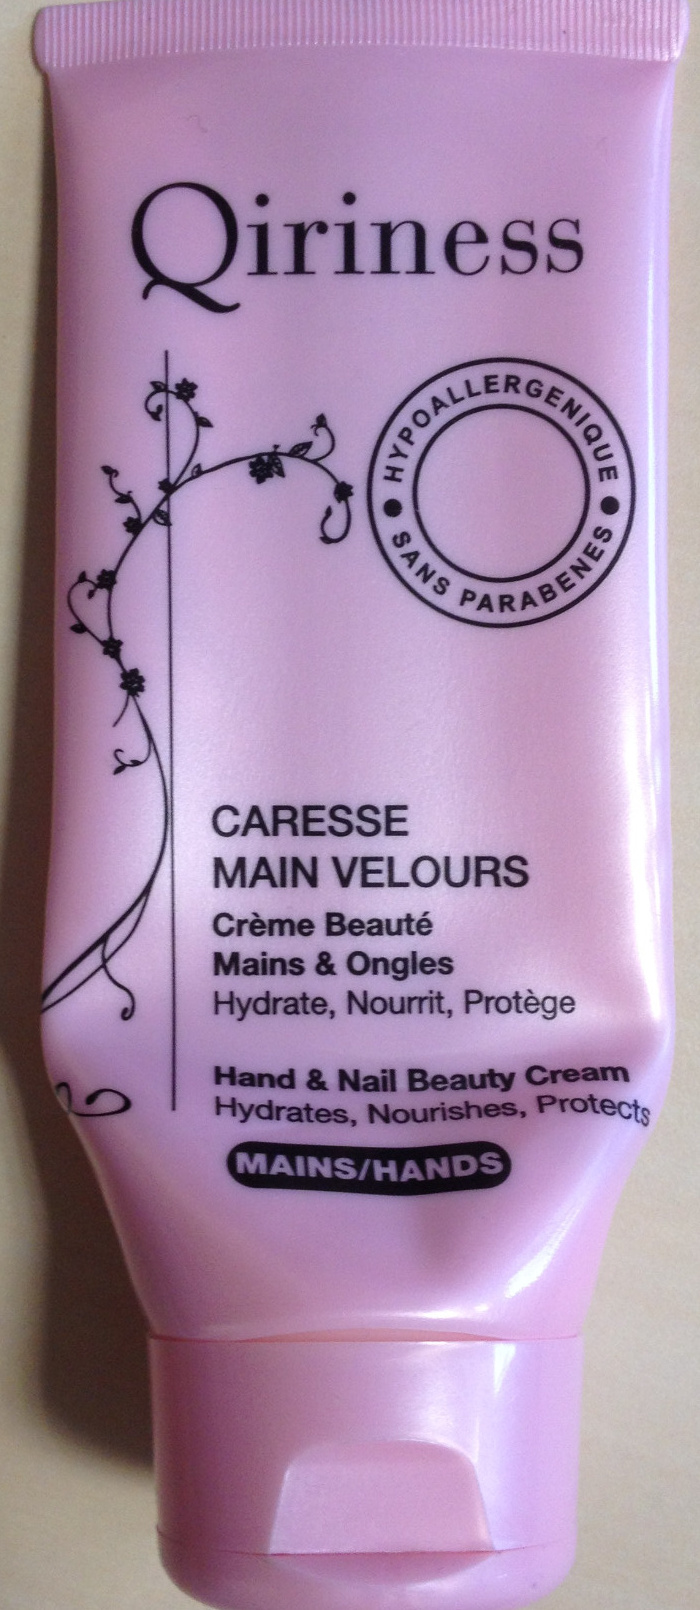 Caresse main velours - Produit - fr